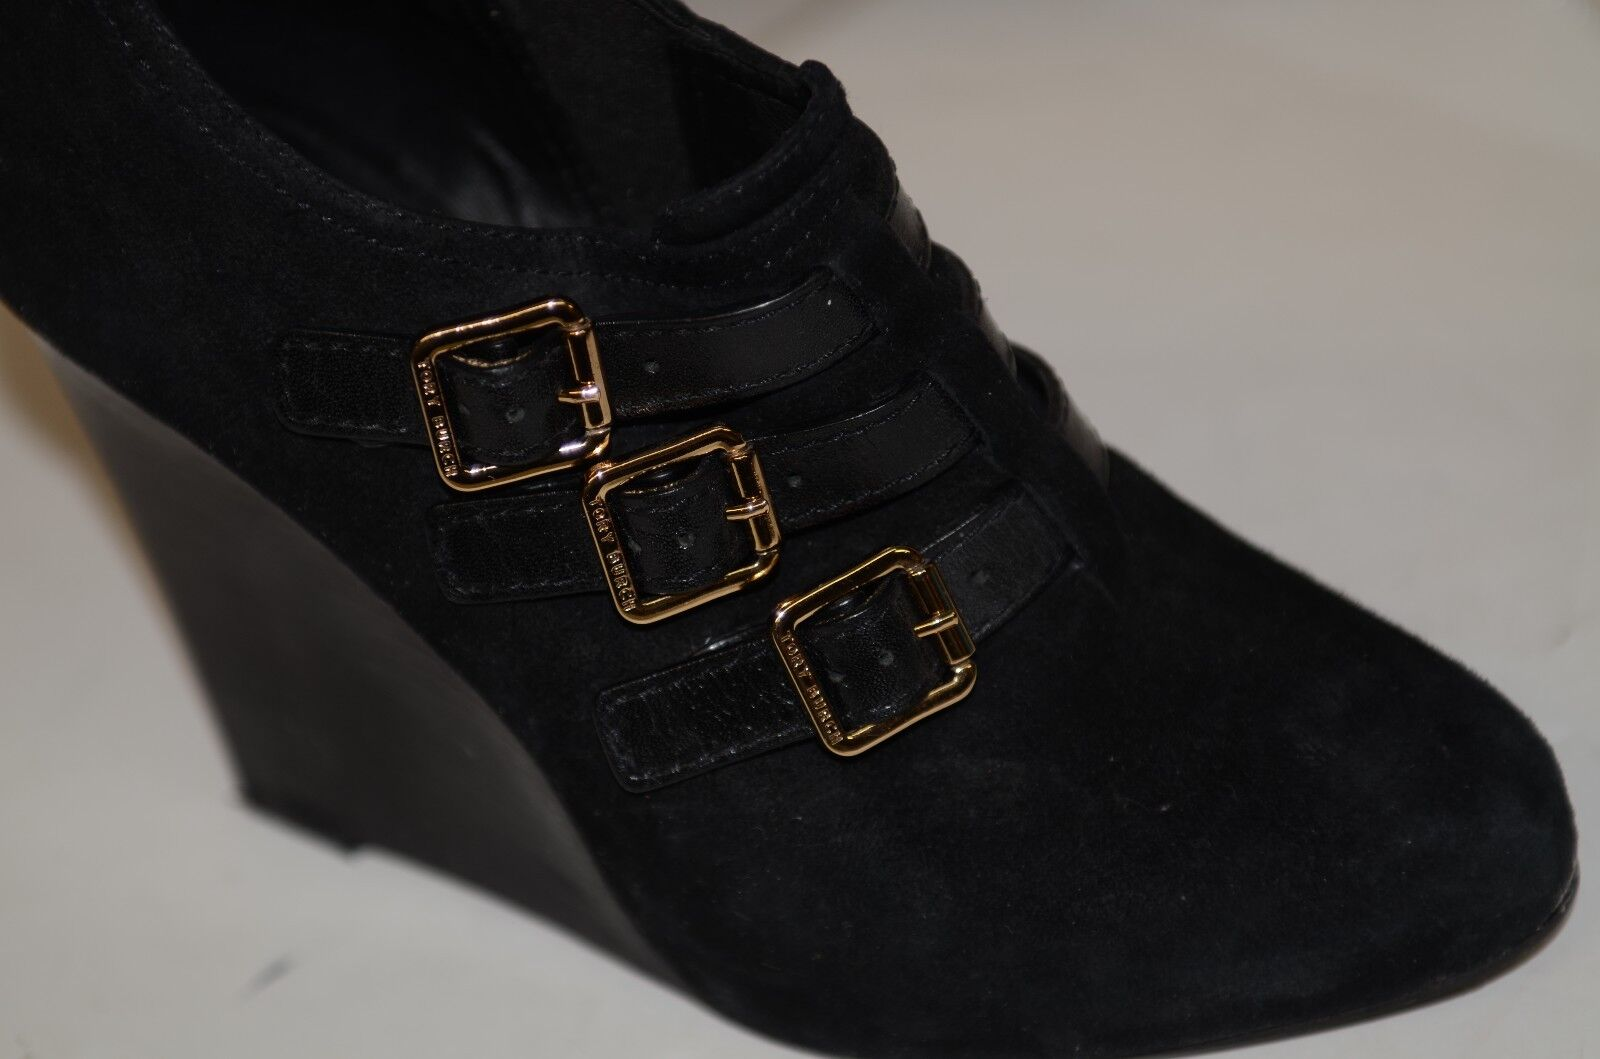 Tory Burch Sz 6.5 M Black Suede Wedge Ankle Booties Buckle Straps Boots Comfy